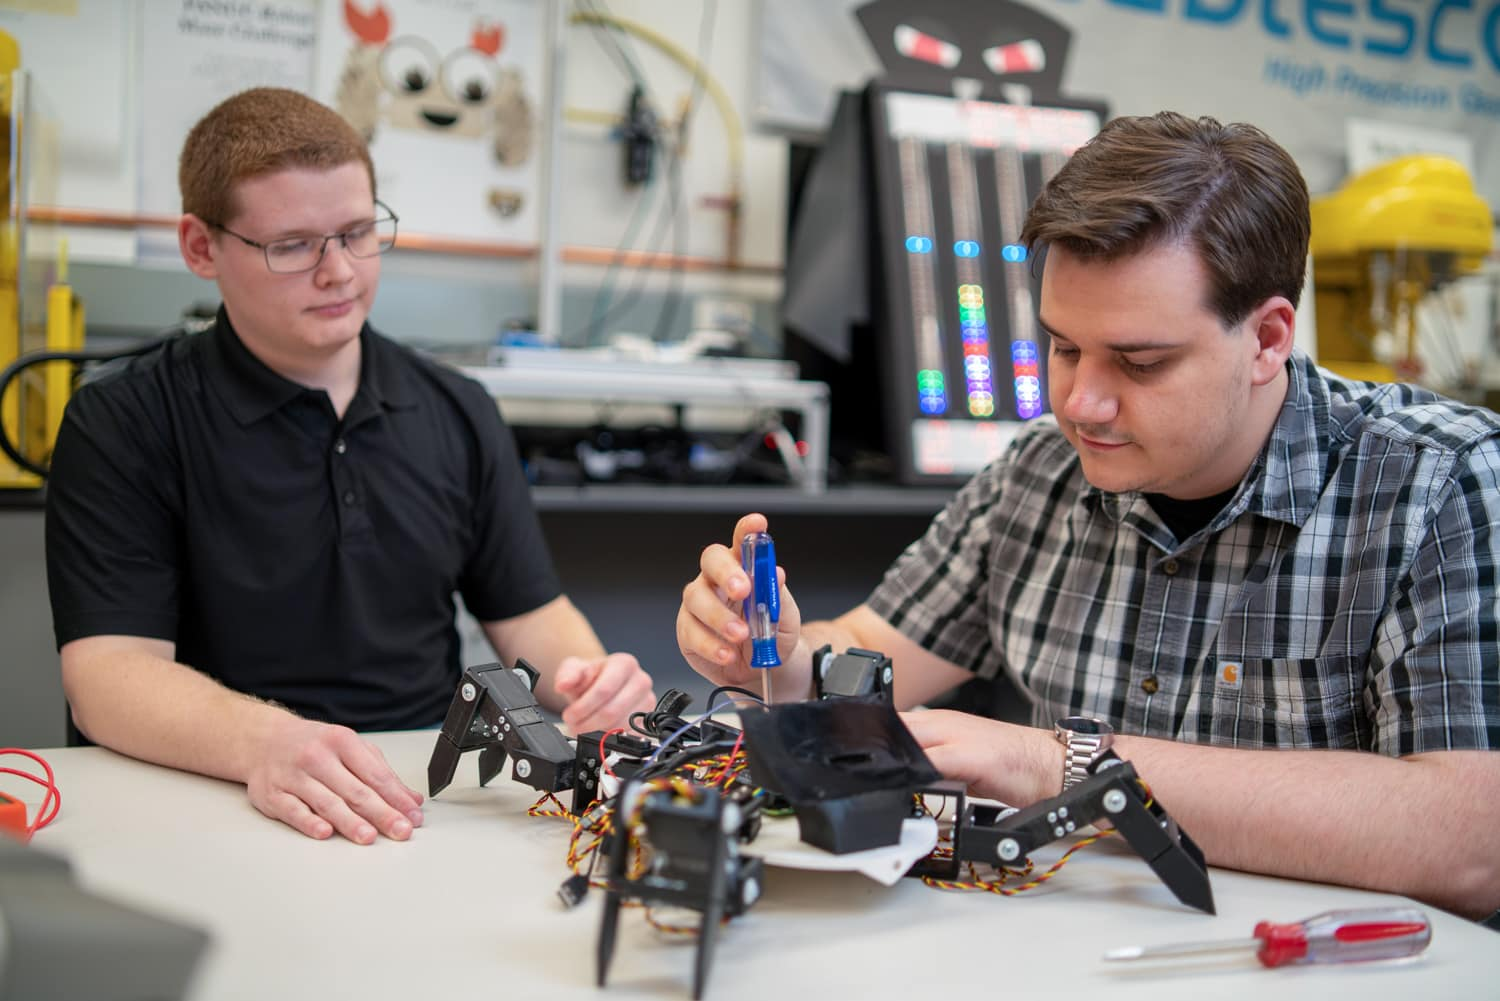 2 oakland university students working on a roboto